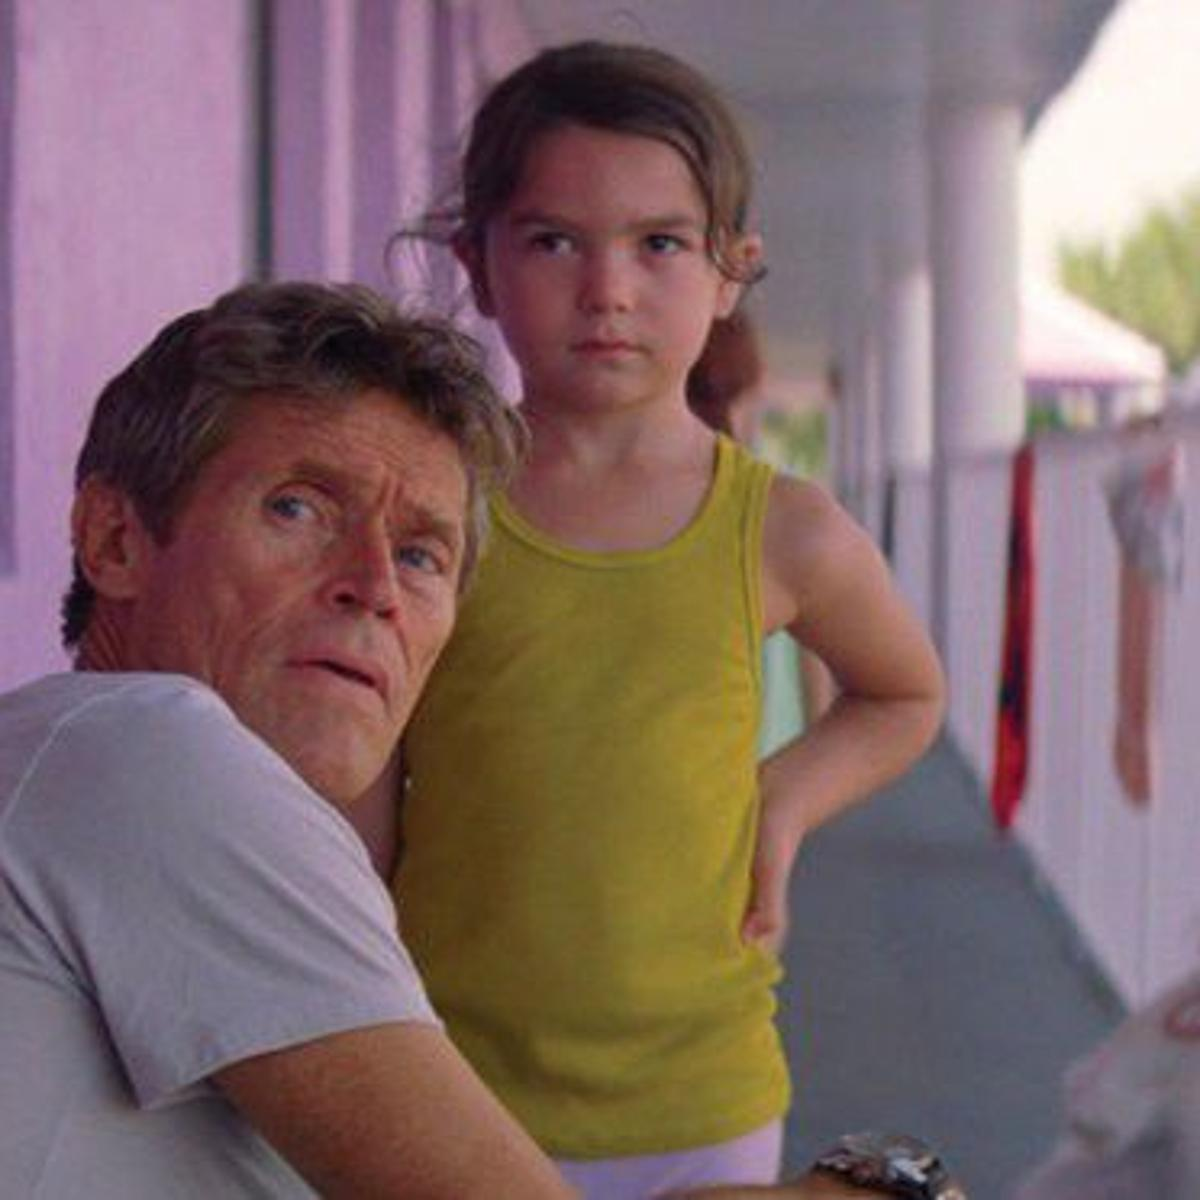 Indie darling 'The Florida Project' to open 2017 New Orleans Film